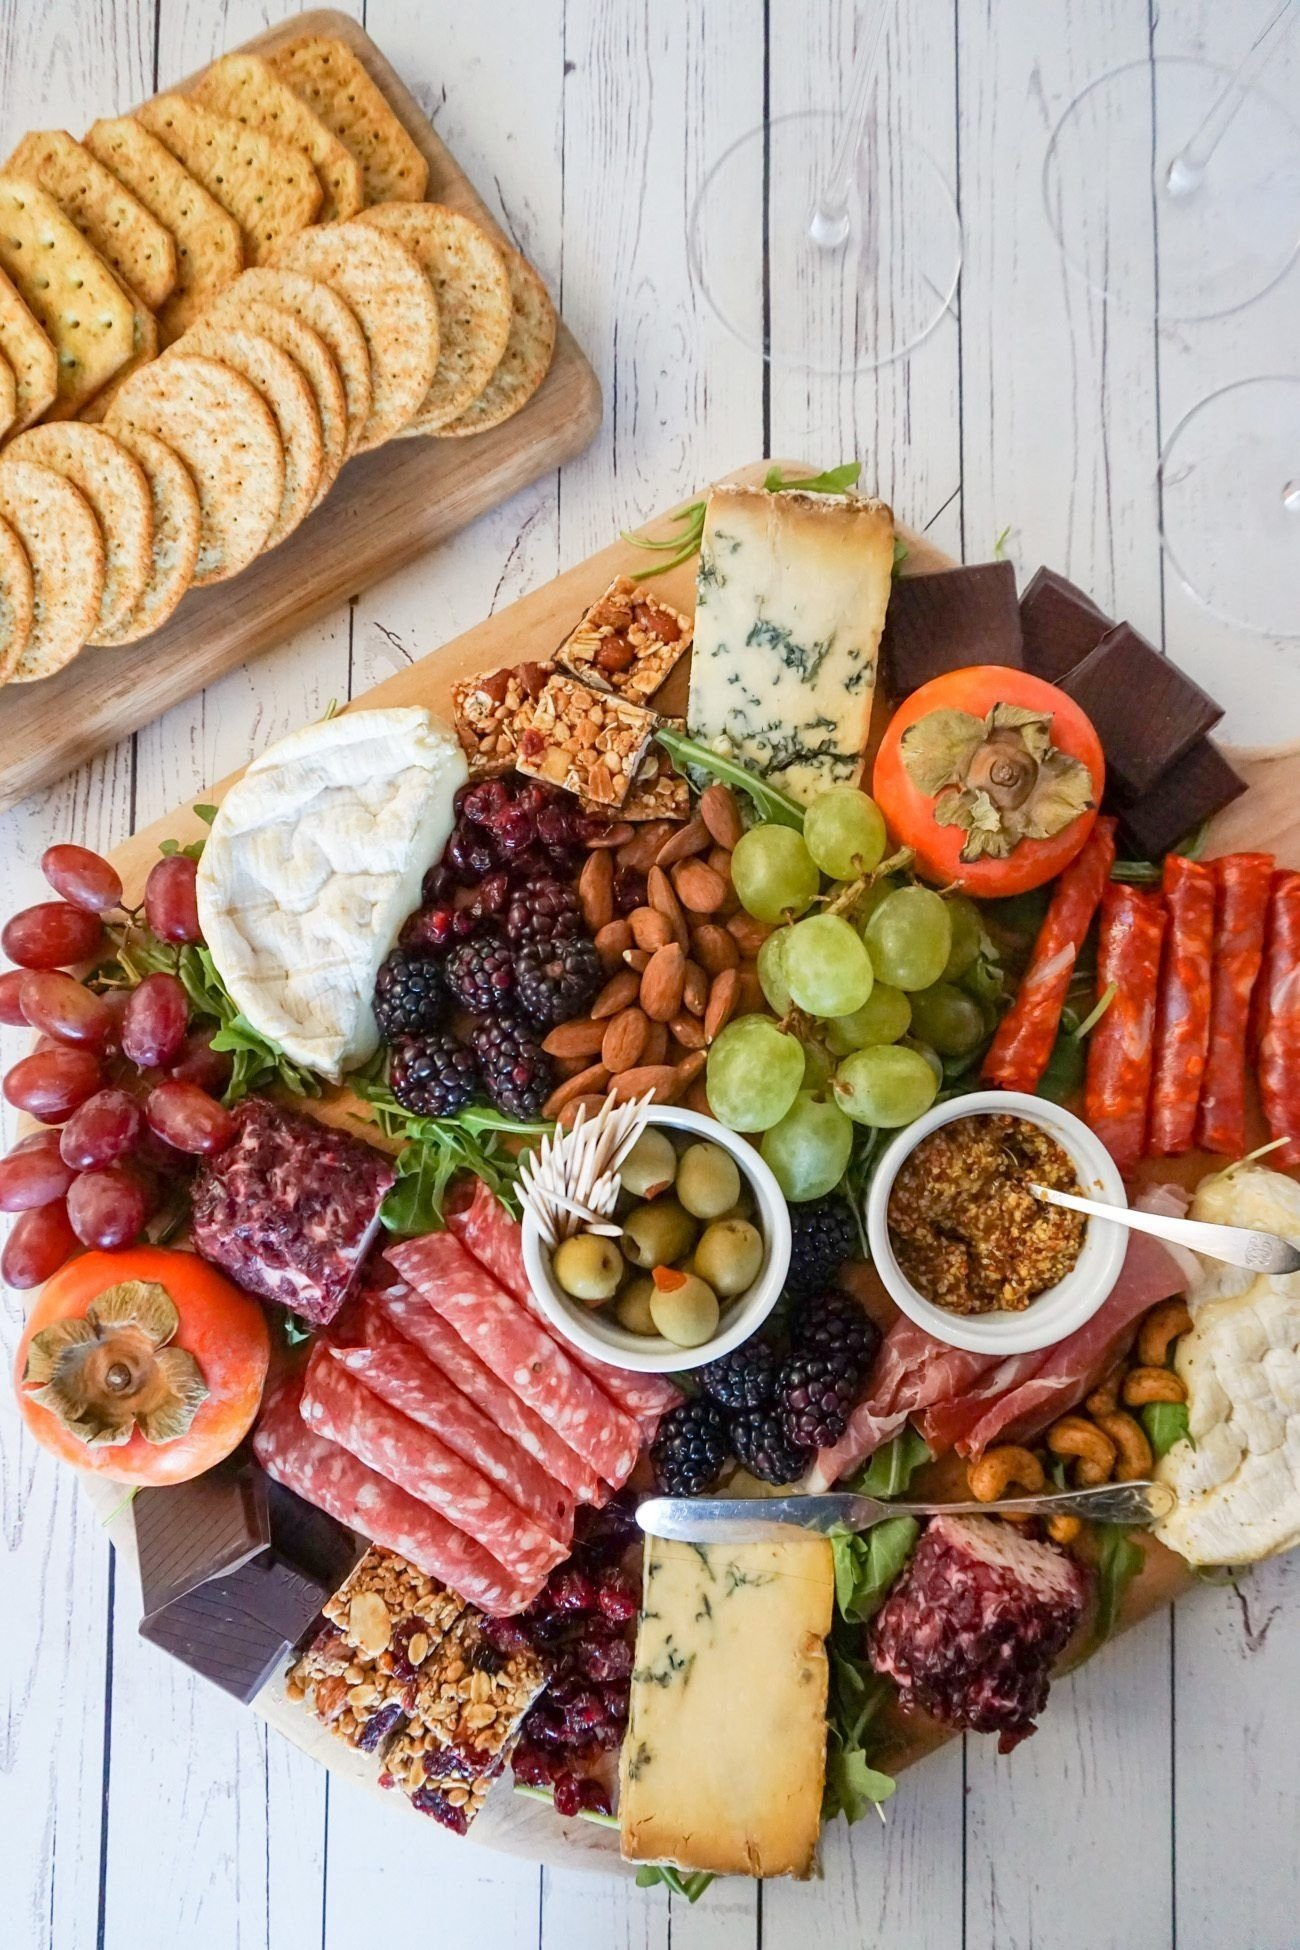 10 Gorgeous Cheese And Meat Platter Ideas tips for making the ultimate charcuterie and cheese board 2 2020